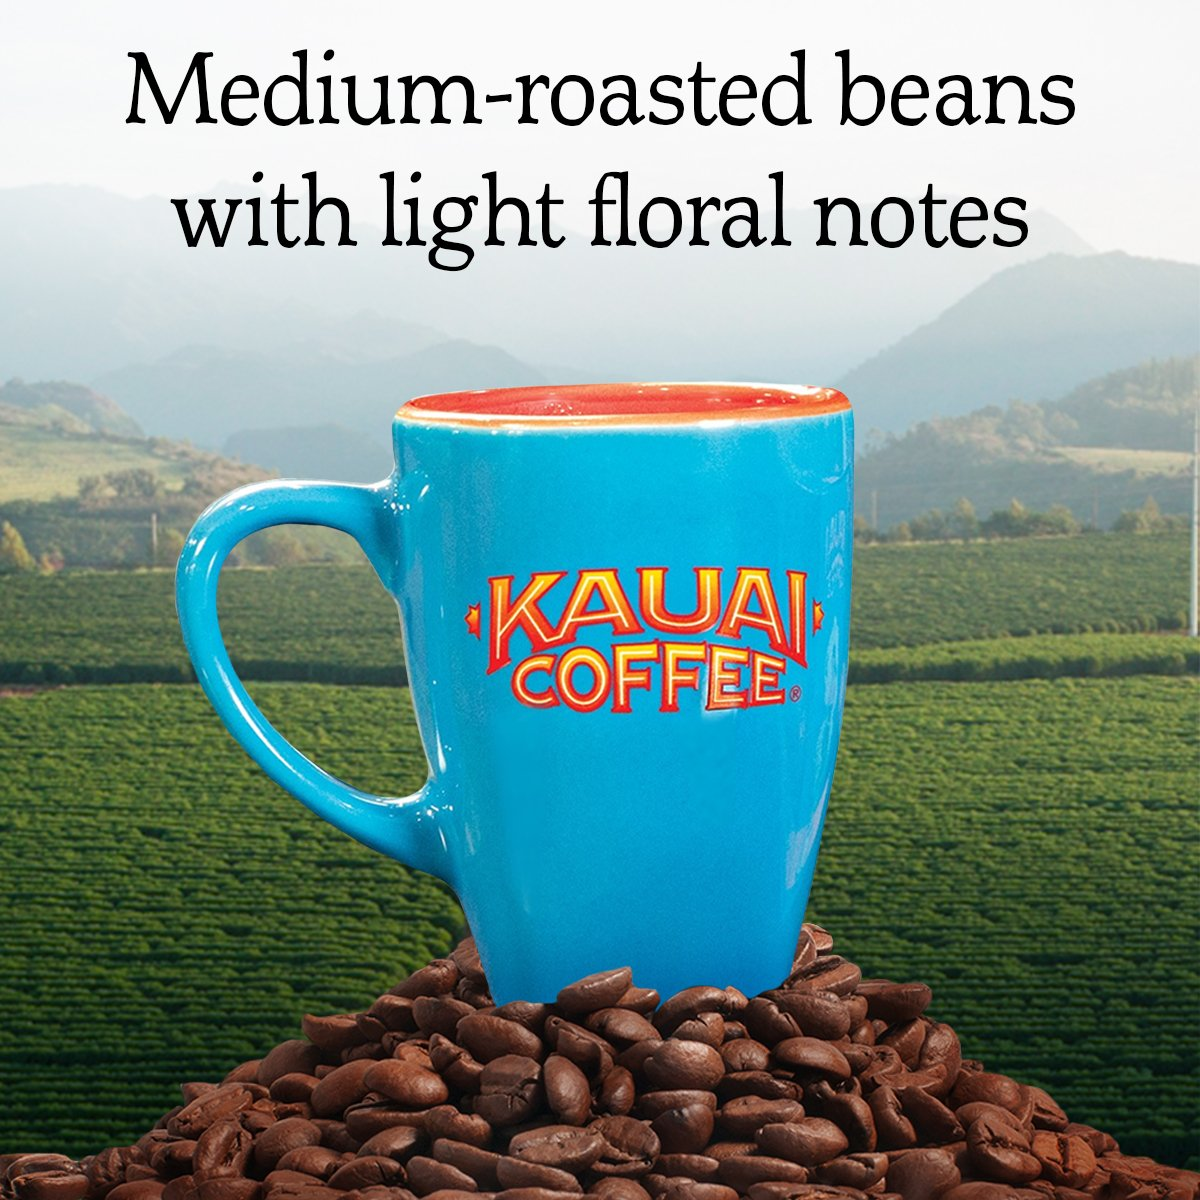 100% Kauai Whole Bean Coffee, Koloa Estate Medium Roast – 100% Premium Arabica Whole Bean Coffee from Hawaii's Largest Coffee Grower - Bright Aroma with Light Floral Notes (32 Ounces) by Kauai (Image #2)